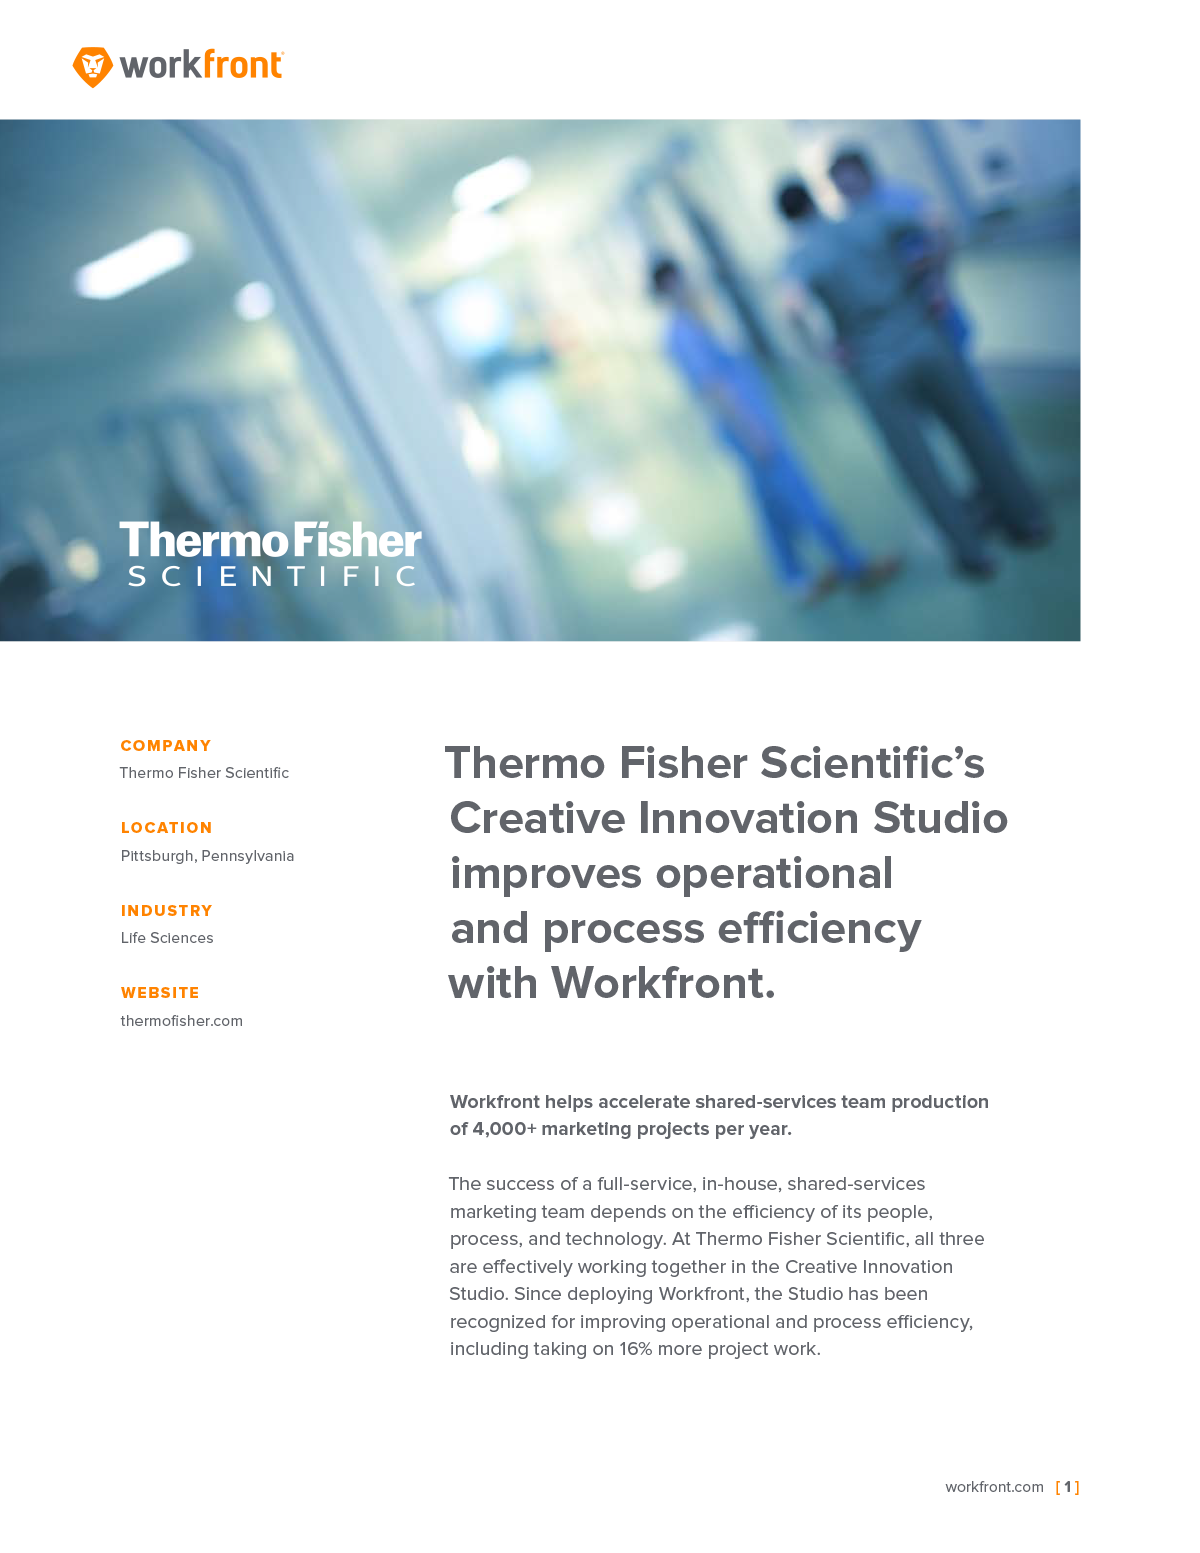 Thermo Fisher Case Study